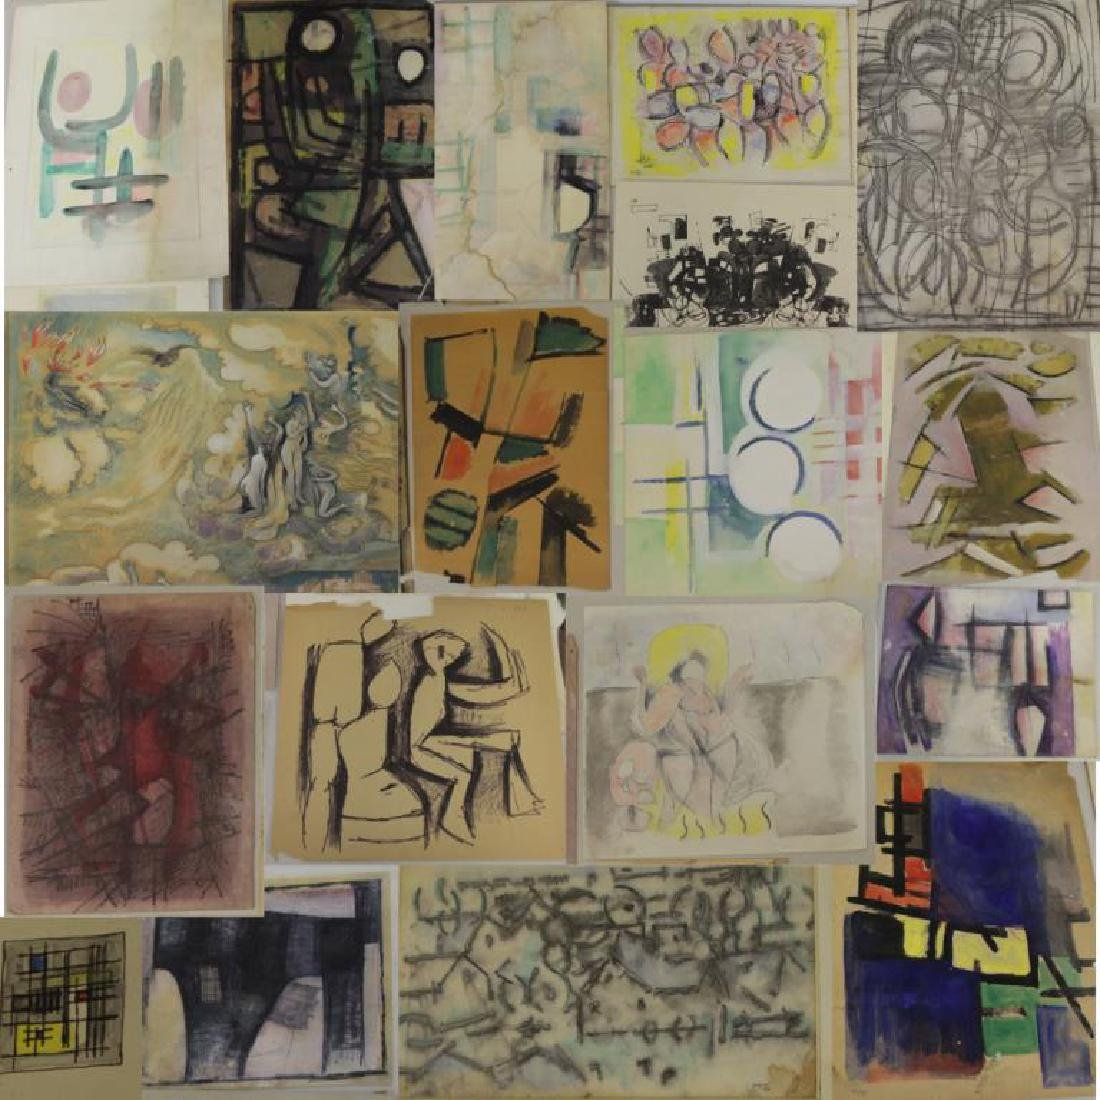 XCERON, Jean. Large Collection of Works on Paper